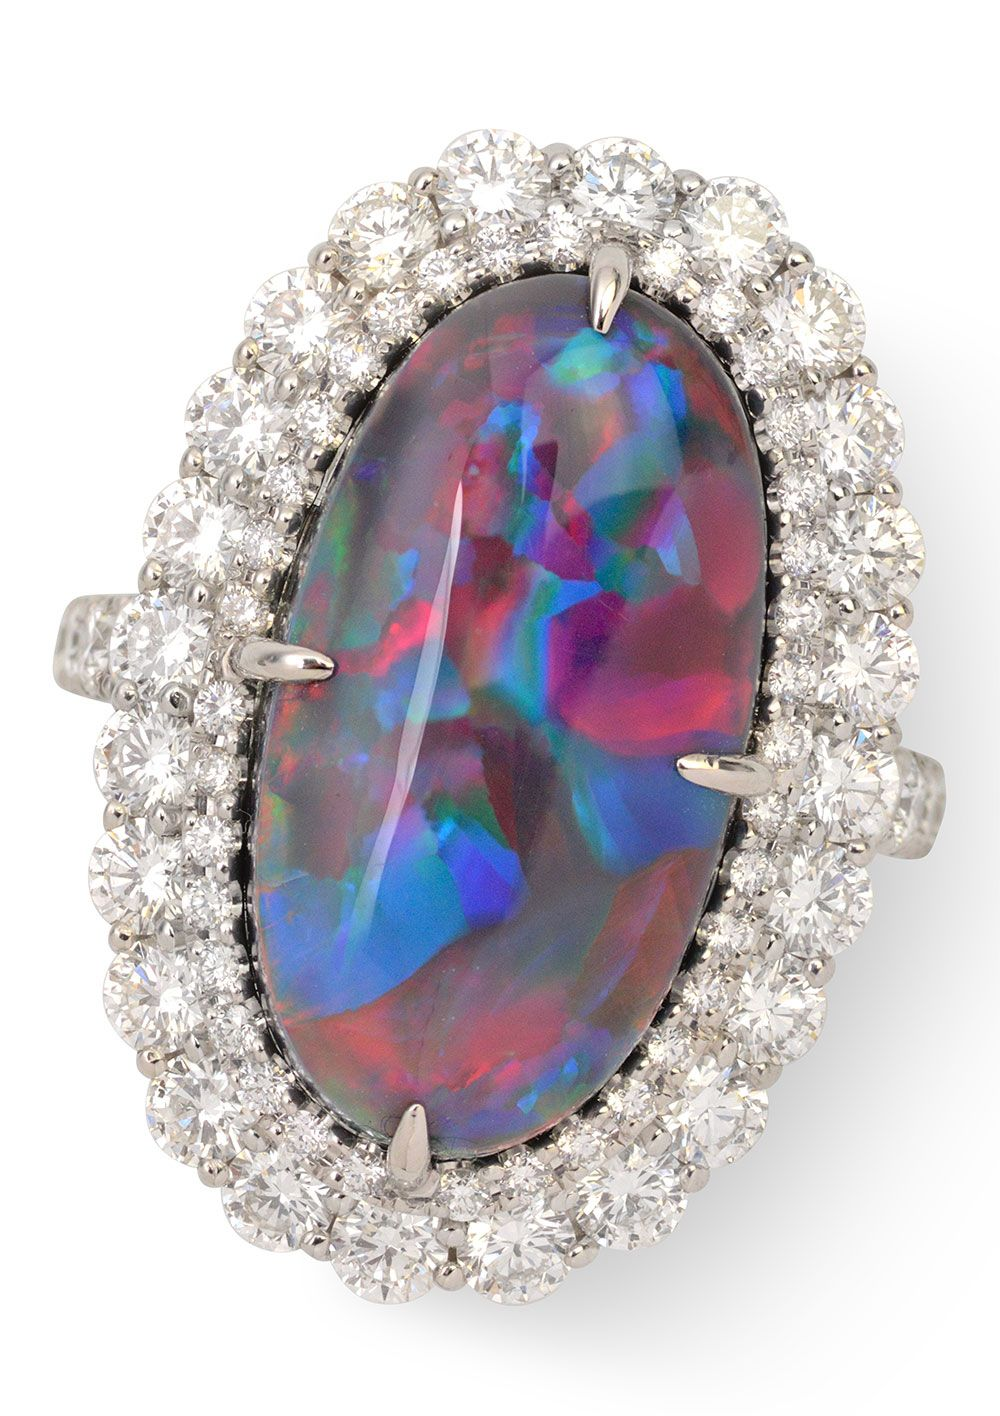 9.70 ct Australian Lightning Ridge Black Opal & 2.48 ctw Diamond PT950 12.62gr Ring Size 6.5 We offer a large selection of engagement rings whether you are a traditionalist and are seeking that perfect diamond or a colored gemstone ring, such as sapphire, ruby, or emerald. Fine, designer merchandise, rare gemstones, estate